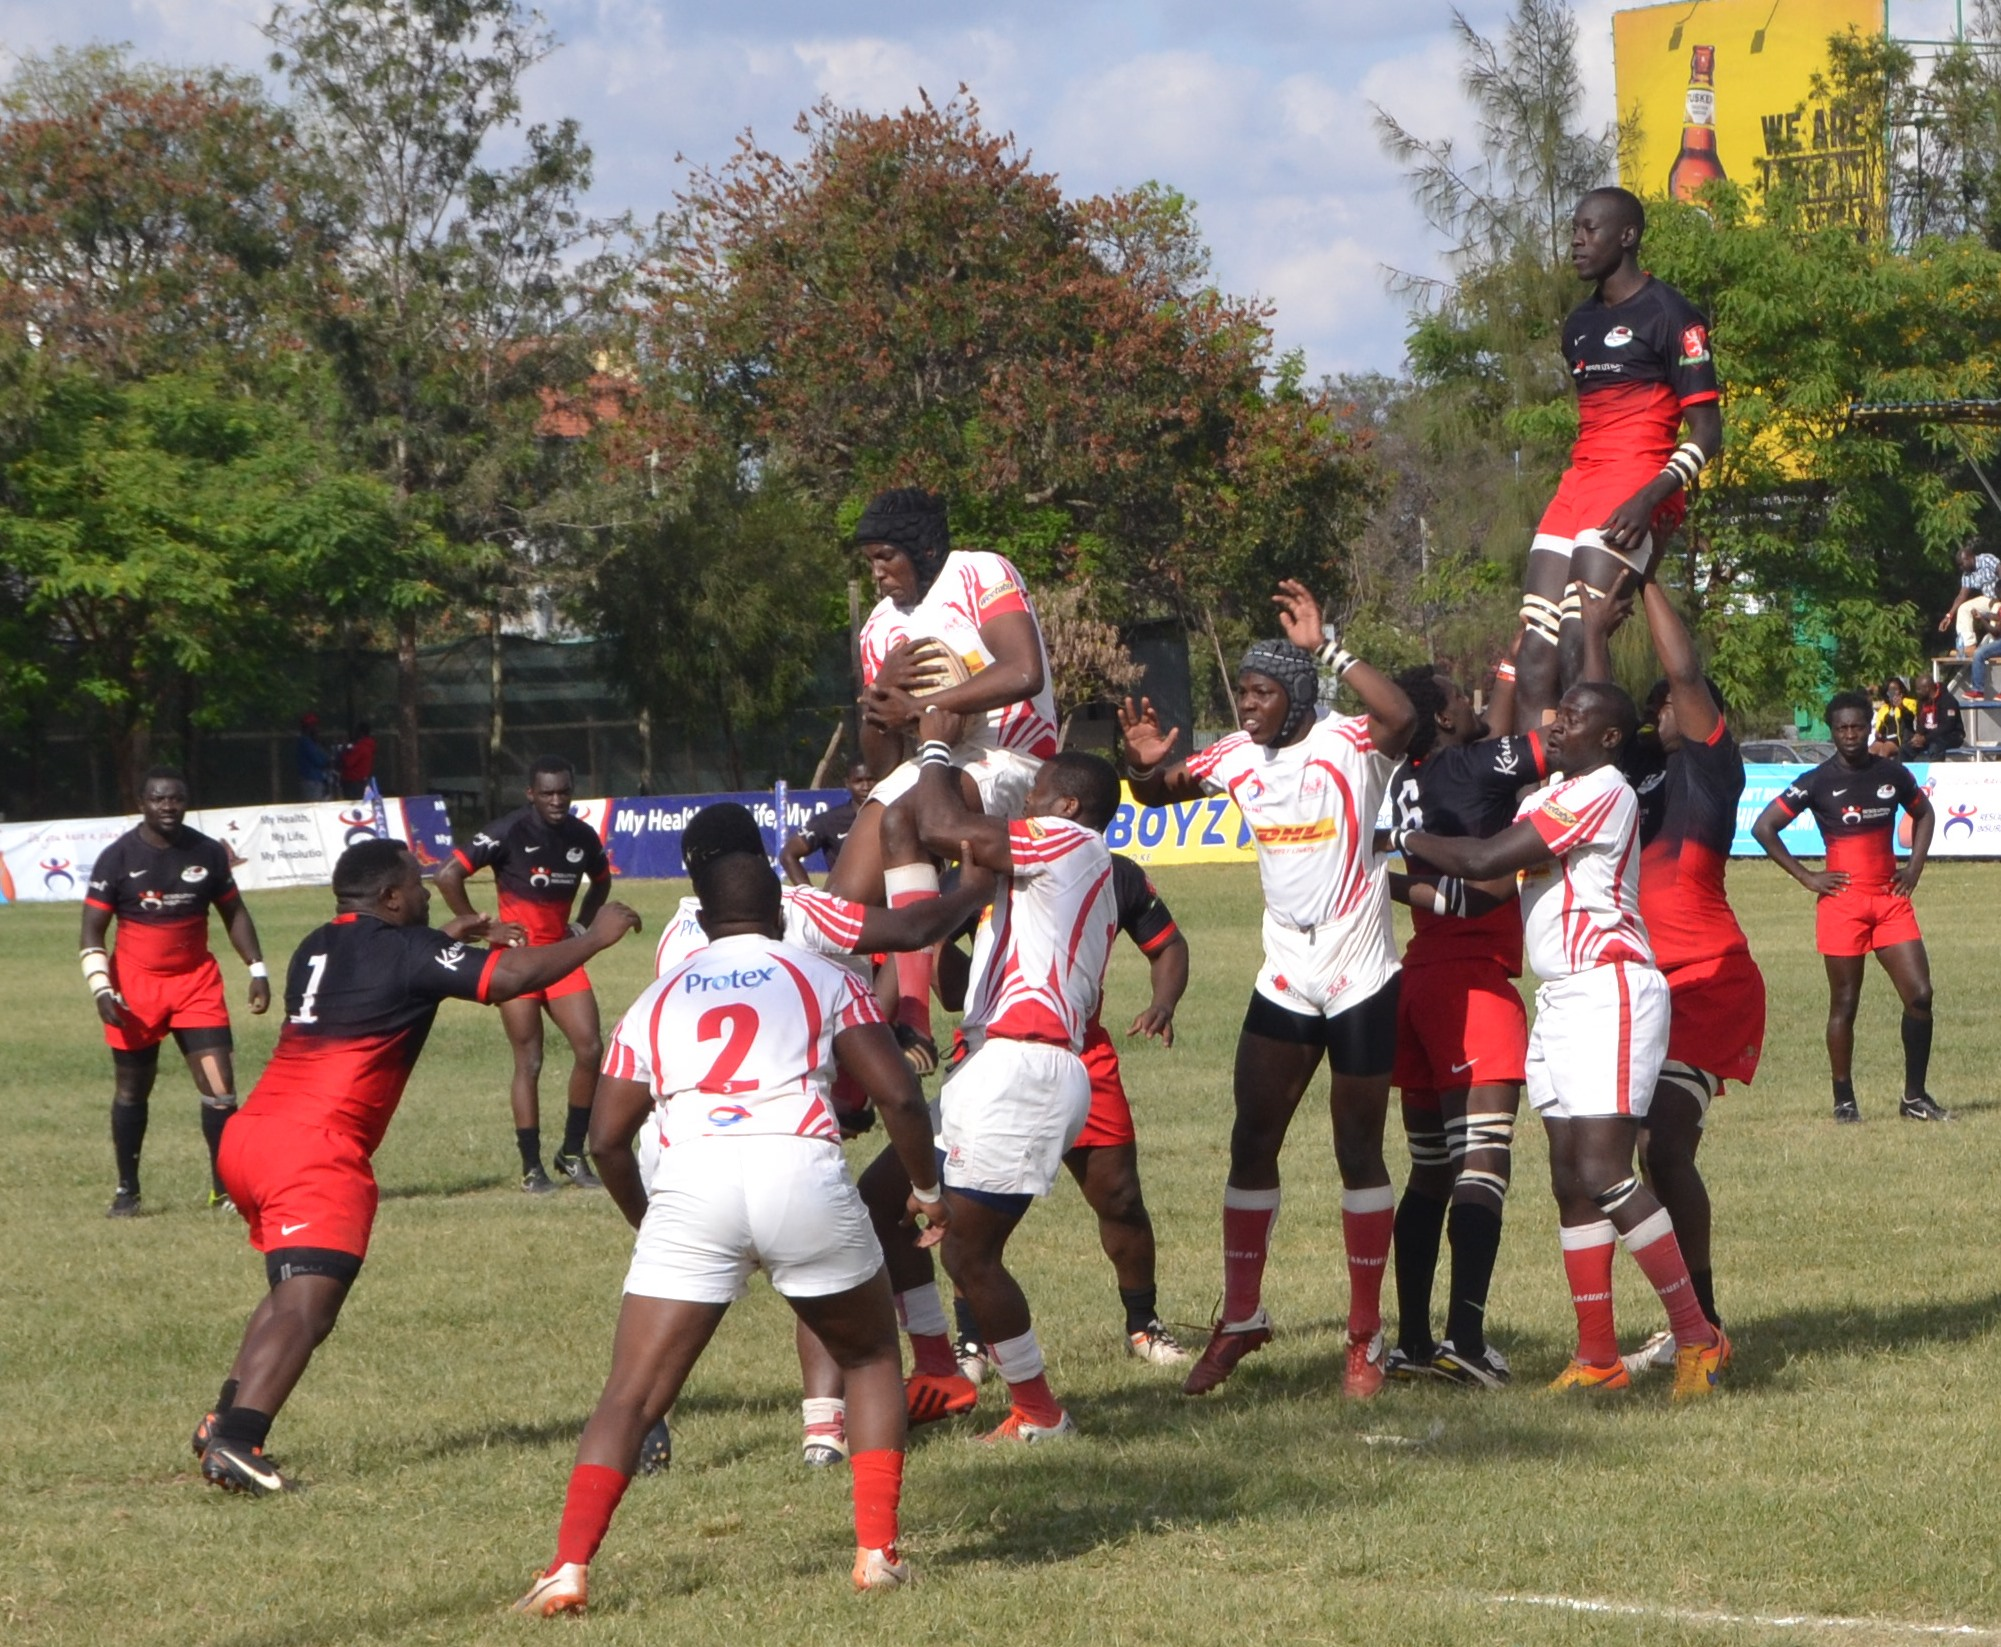 Pending Matches To Be Played This Weekend